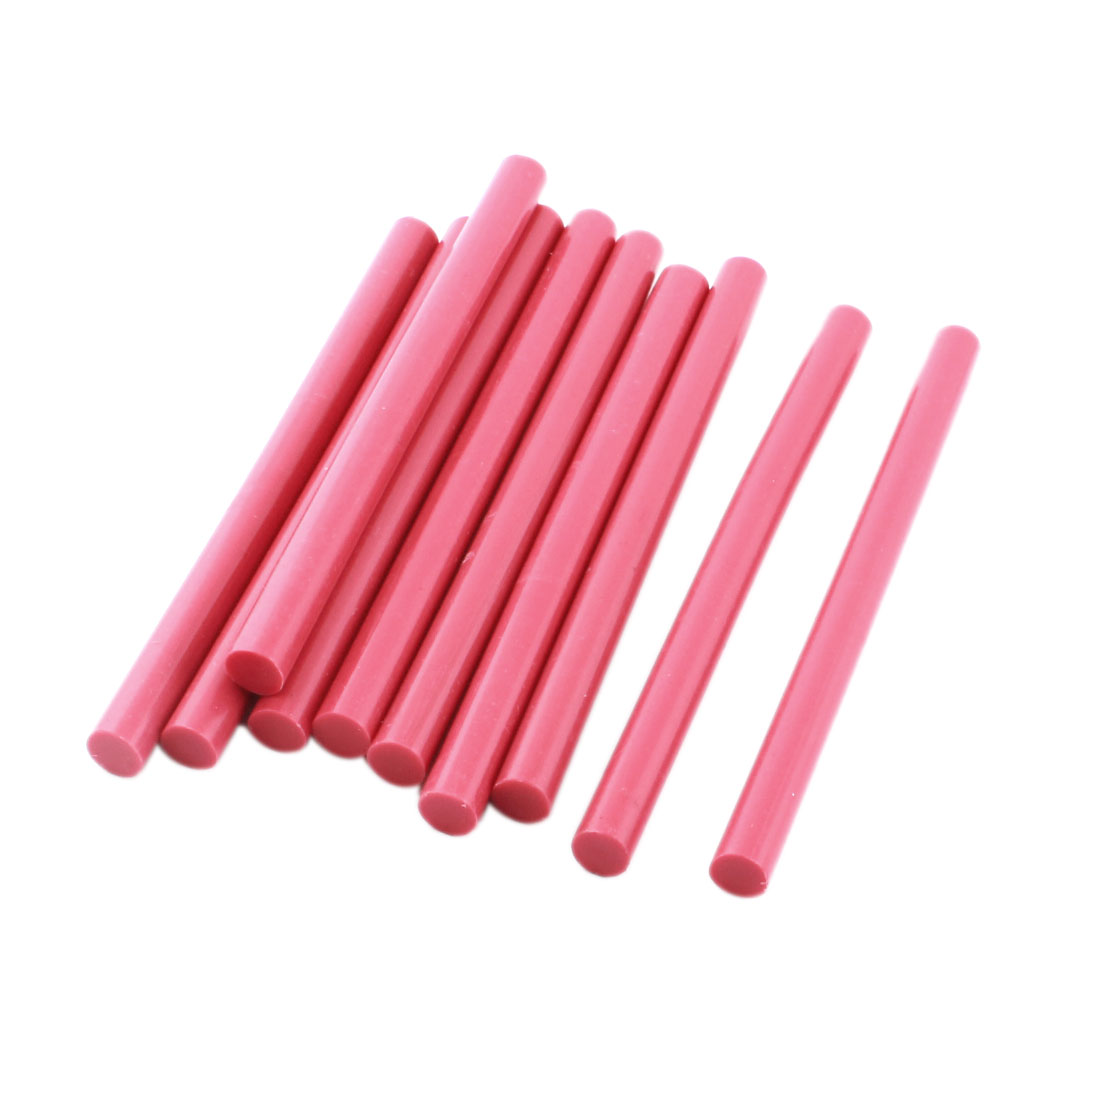 10 Pcs Rose Hot Melt Glue Gun Adhesive Sticks 7mm x 100mm for Crafting Models